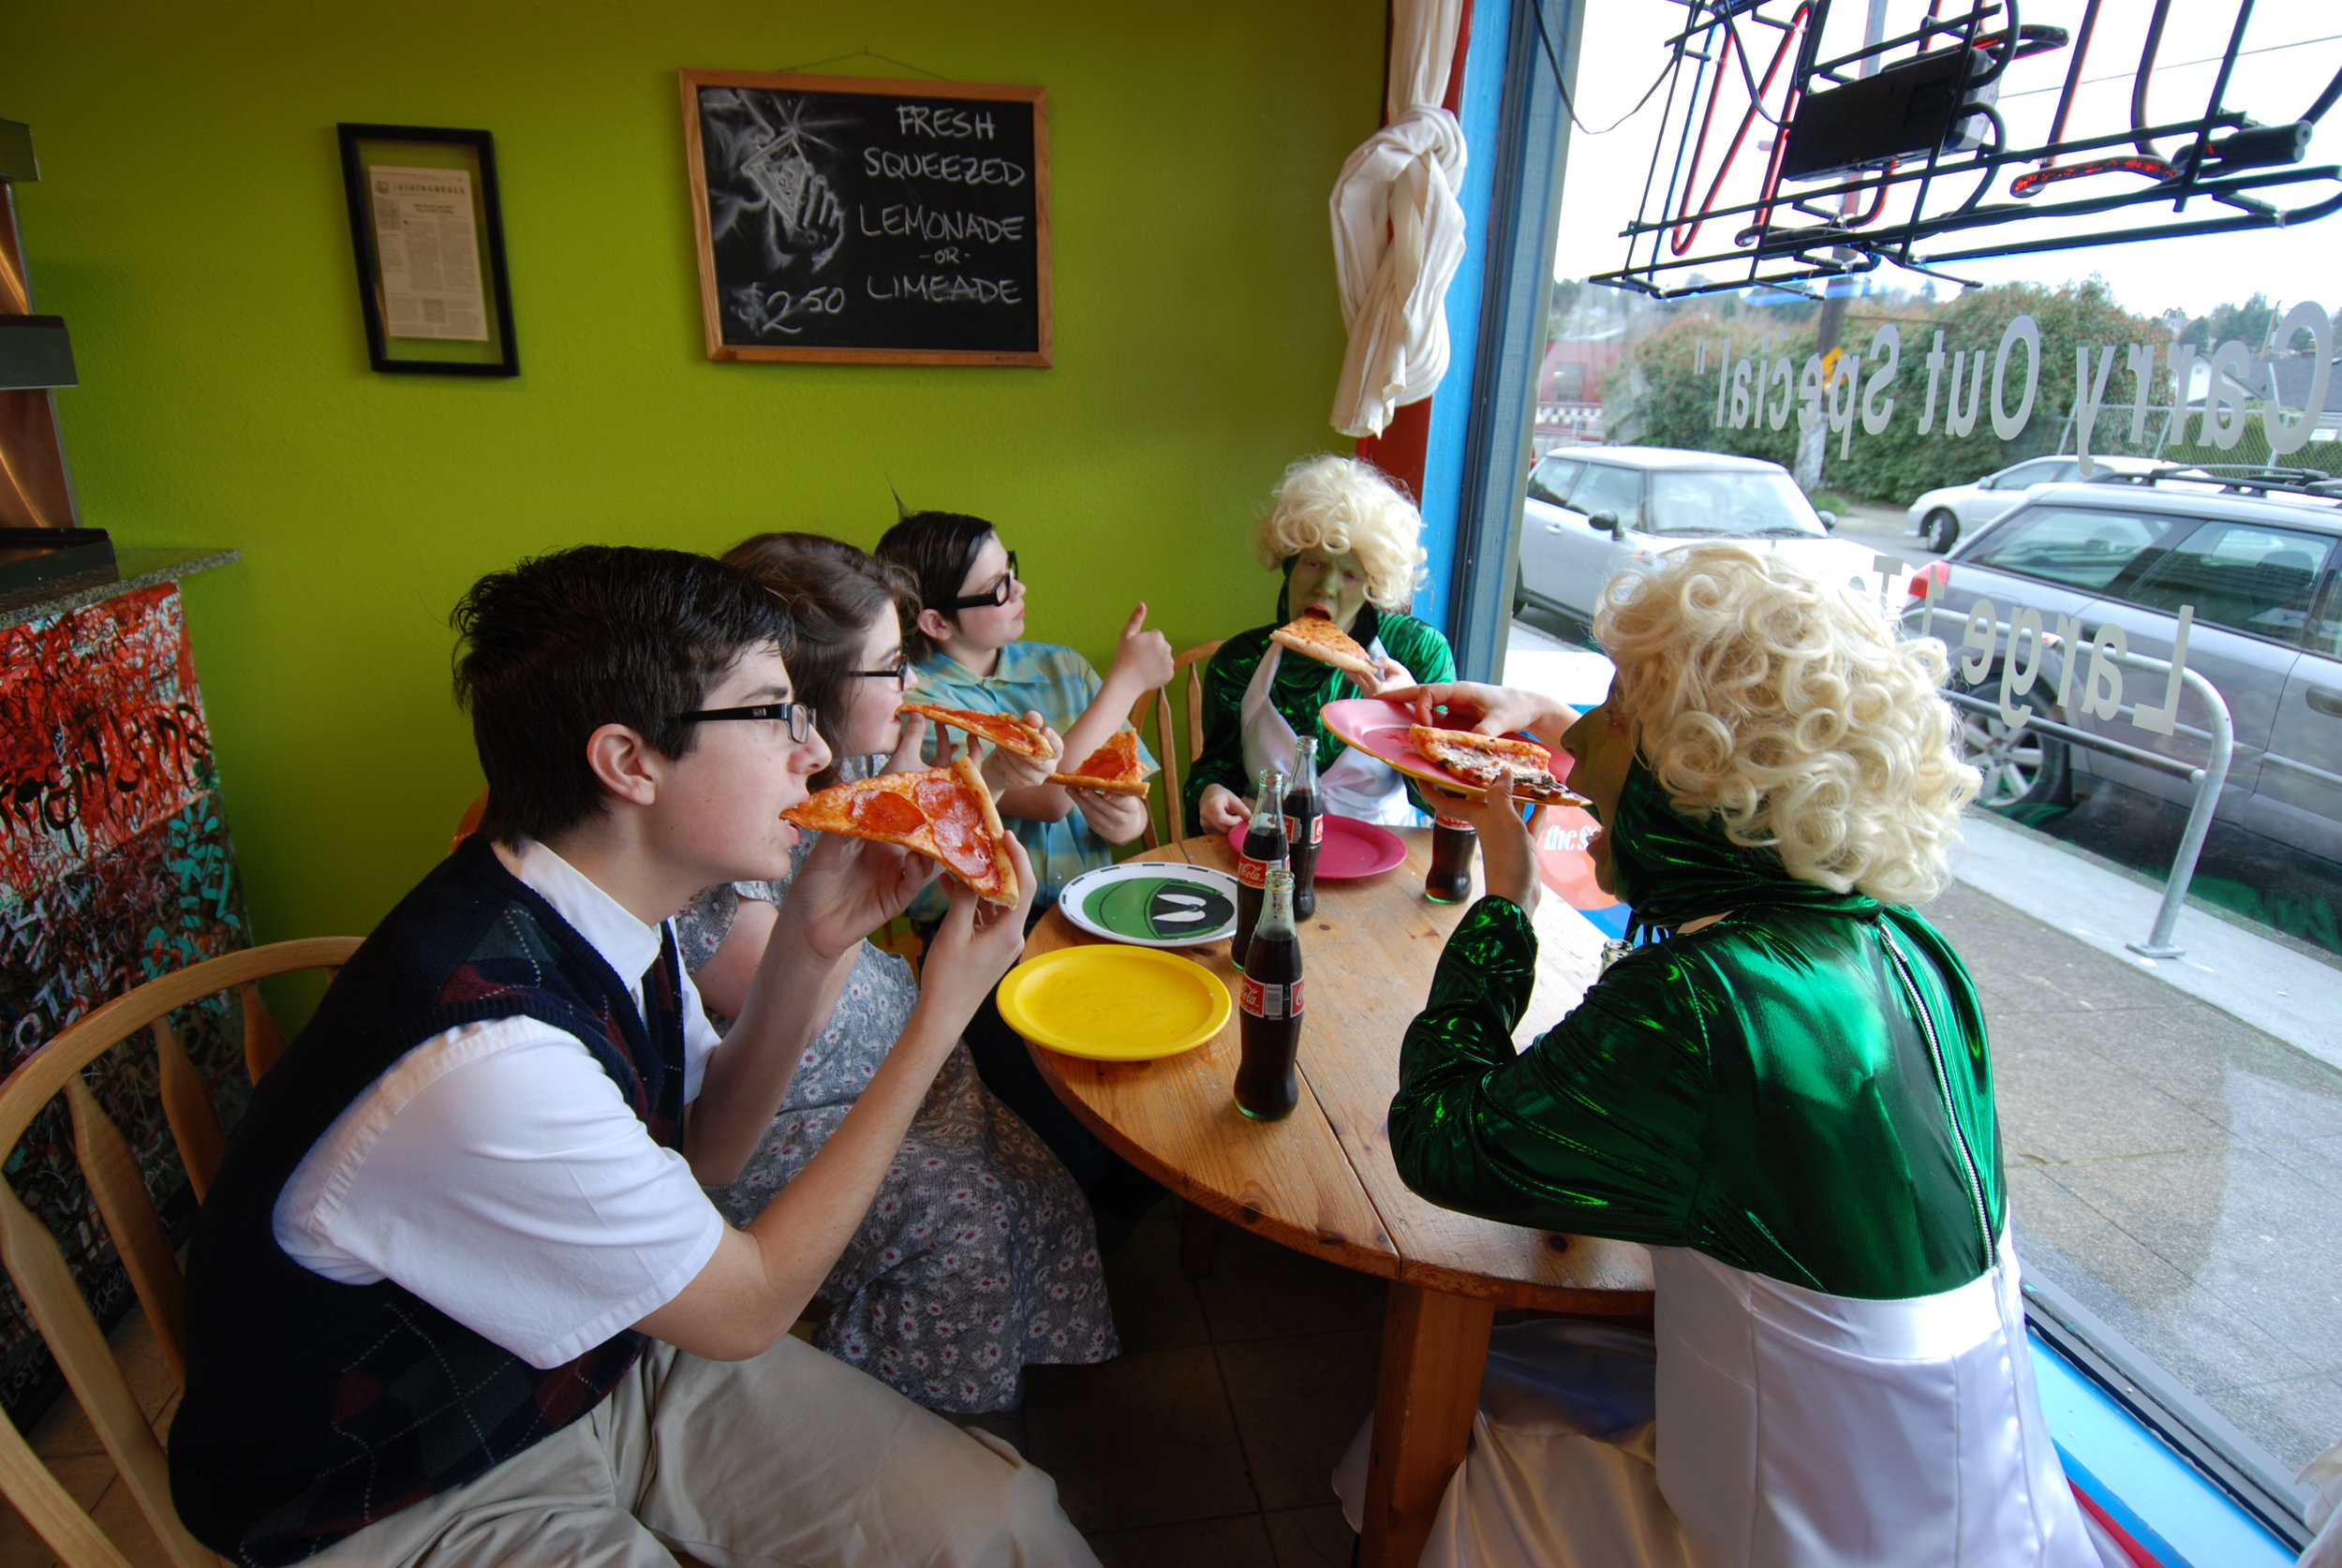 Meanwhile, local science students, Billy Jones,Eugene Simmons and Carol O'Hara. introduce pizza to their new alien friends, Prozac and Zyrtec.